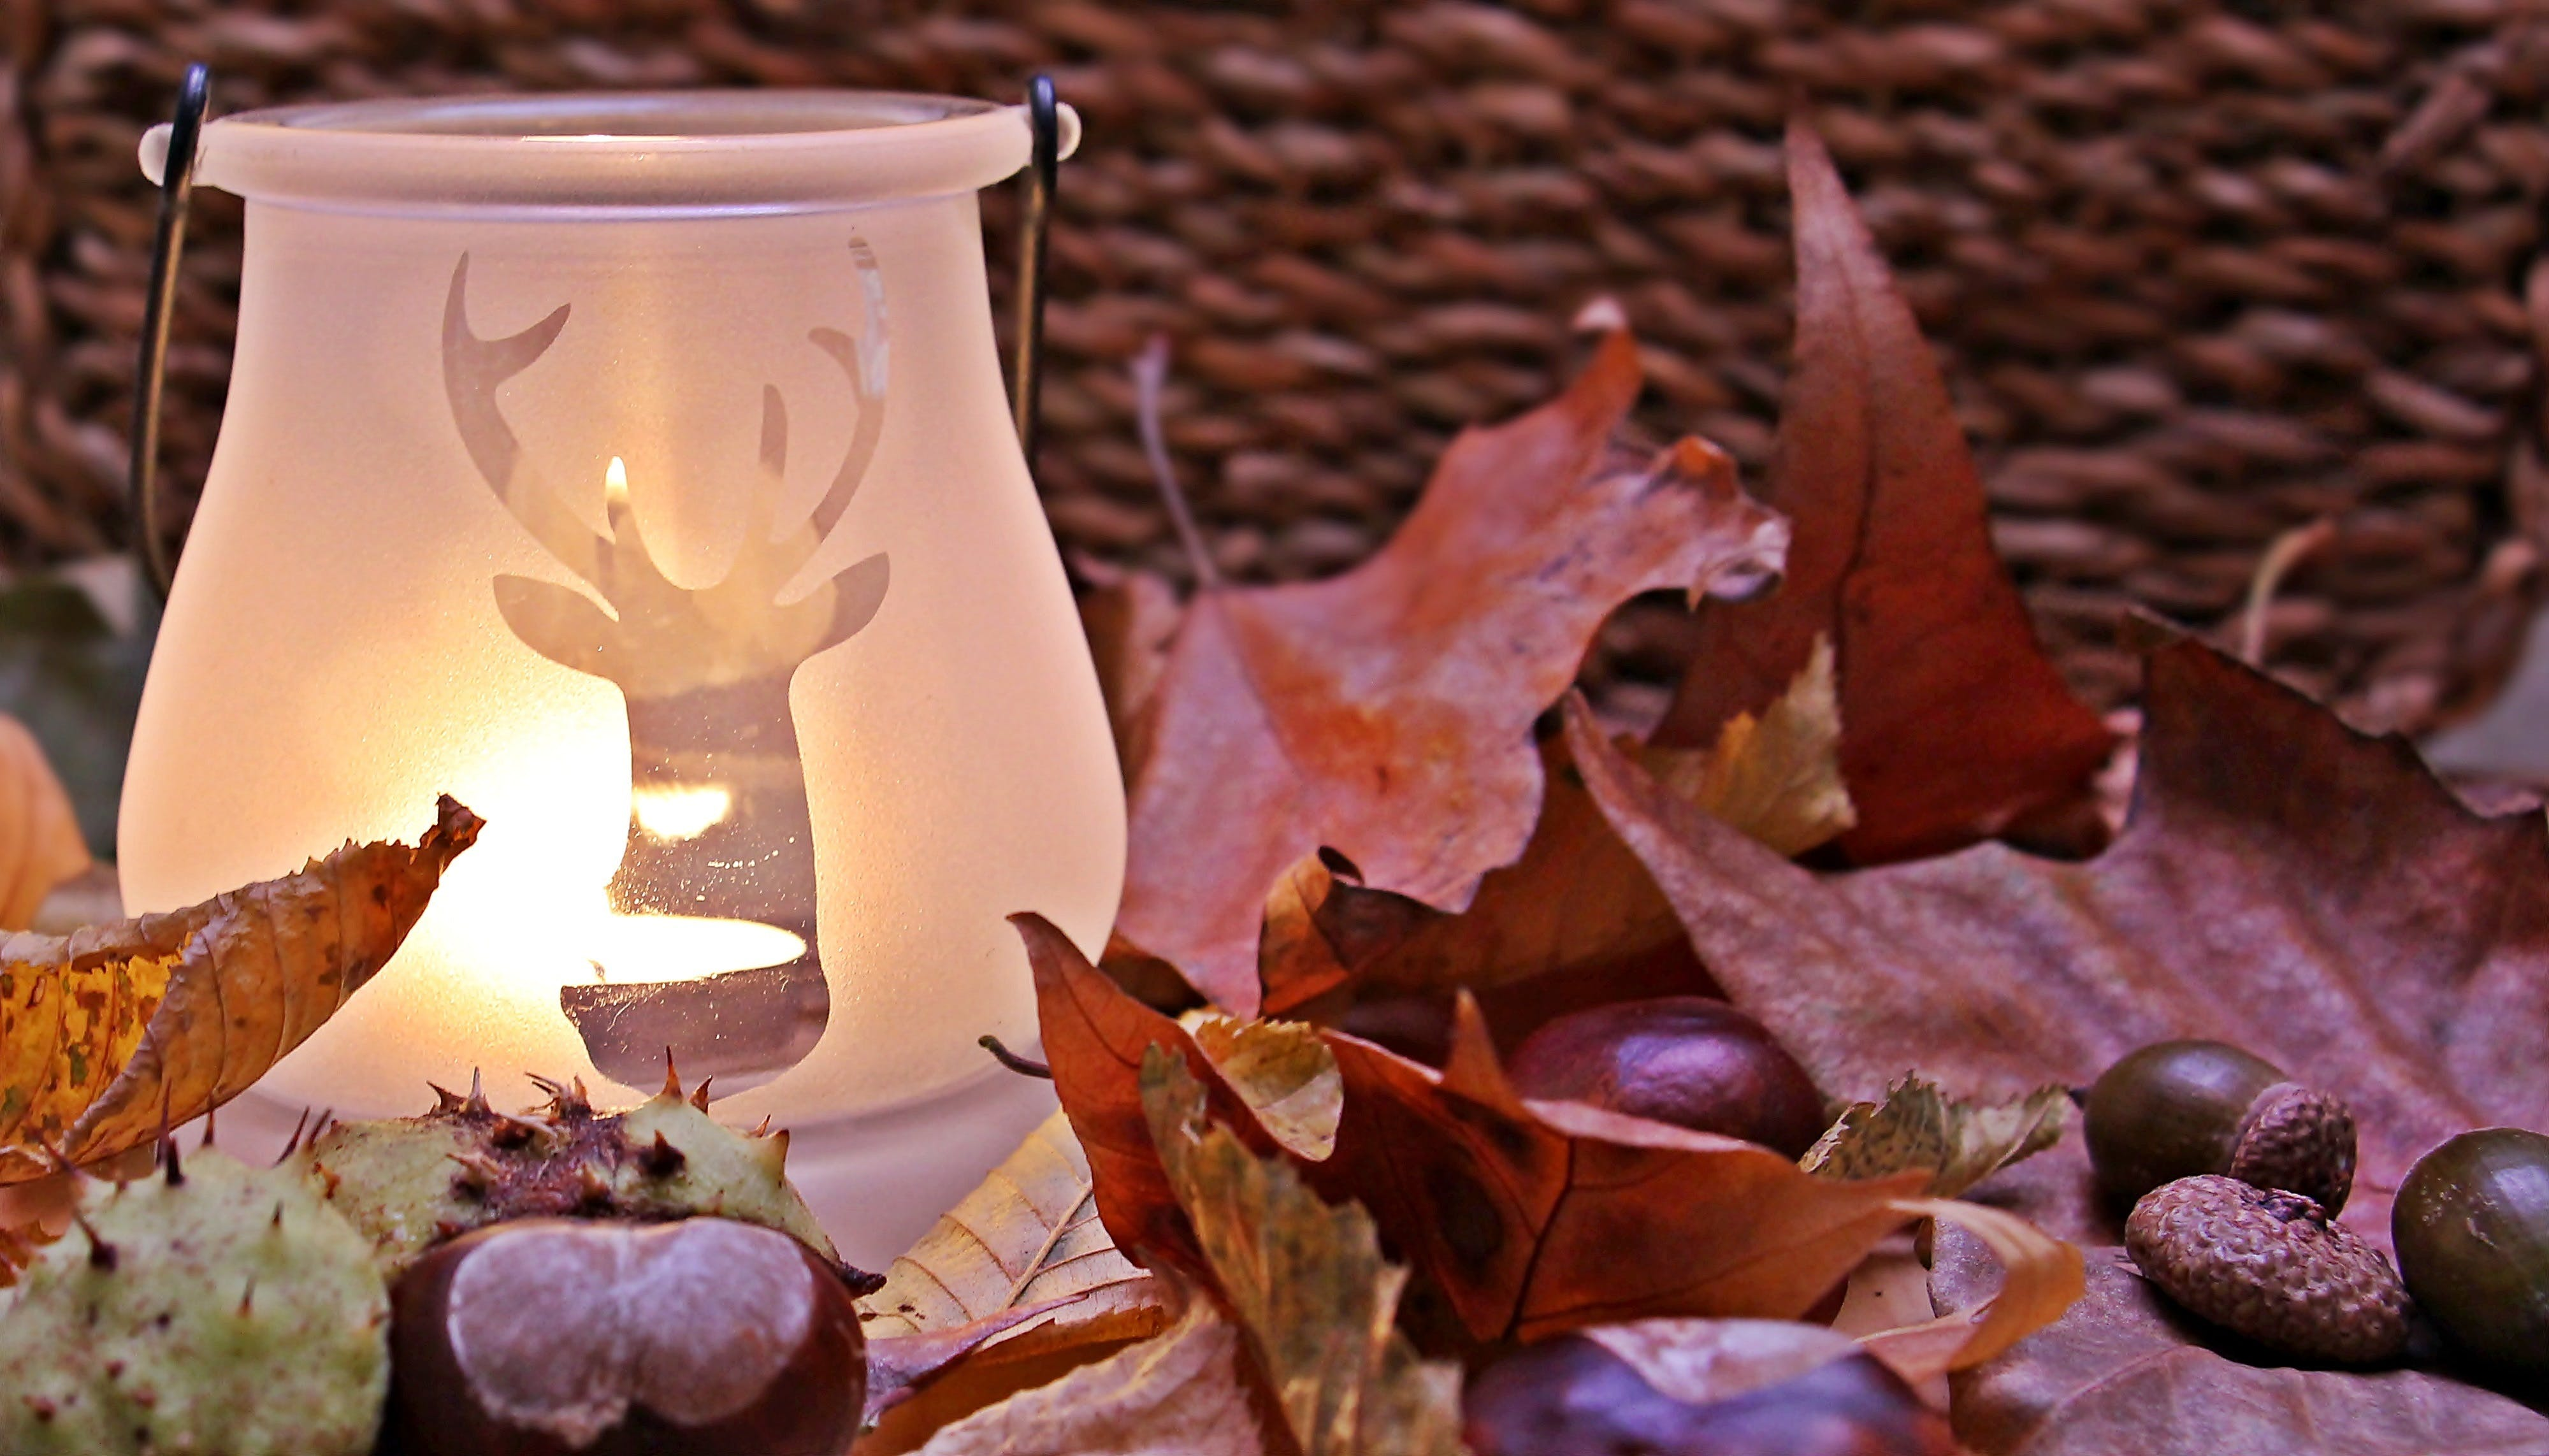 Shallow Focus Photograph Clear Reindeer Print Candle Glass Candle Lamp Near Red Dried Leaf